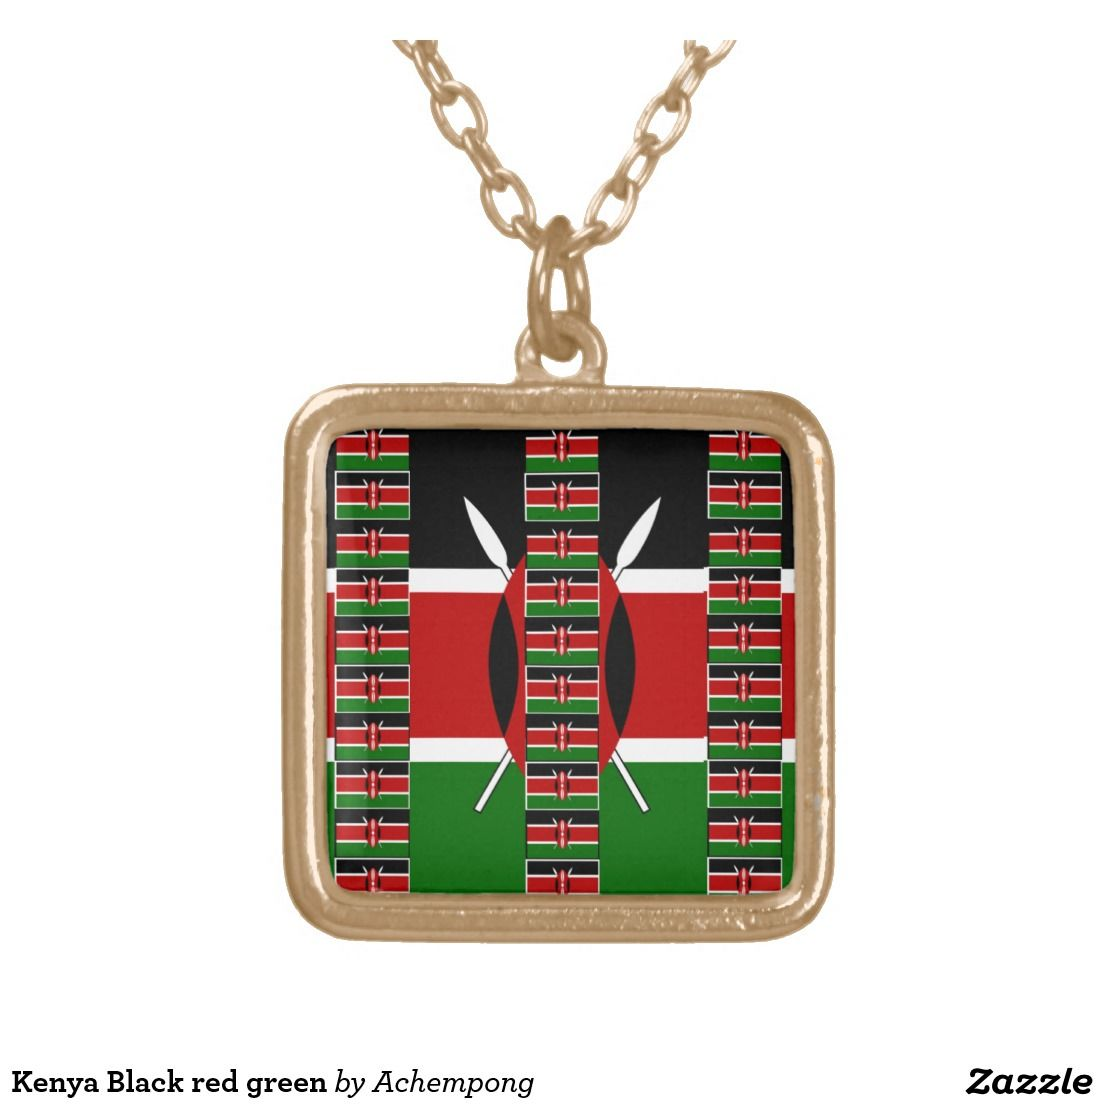 Your Custom Gold Finish Square Necklace Kenya Black Red Green